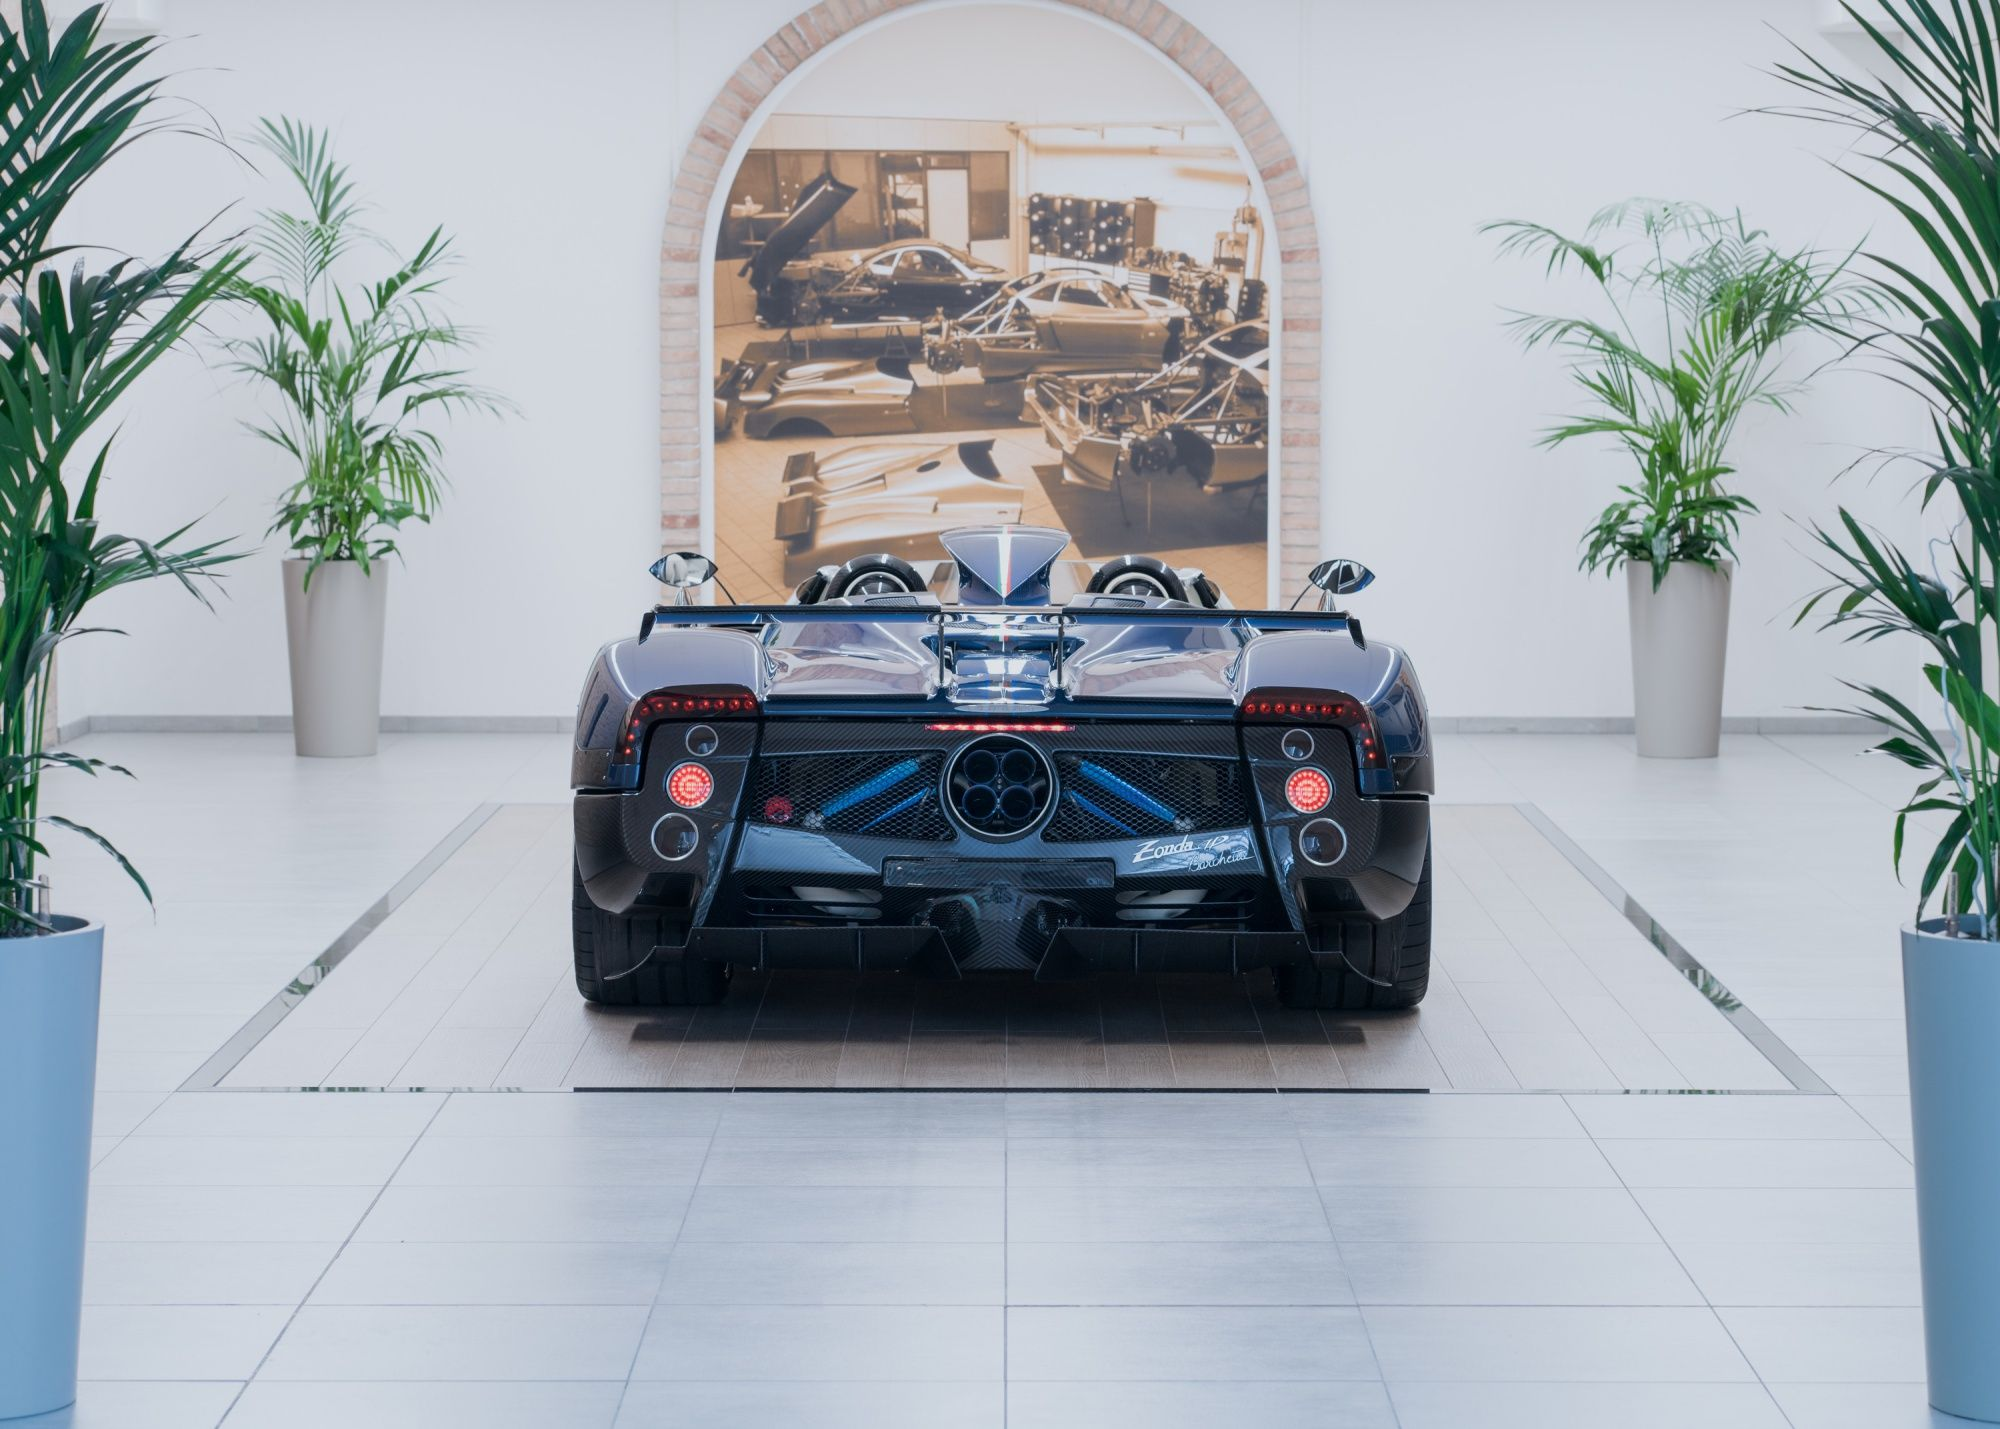 Hypercar Brand Founder and CEO Horacio Pagani Arrives In The Philippines